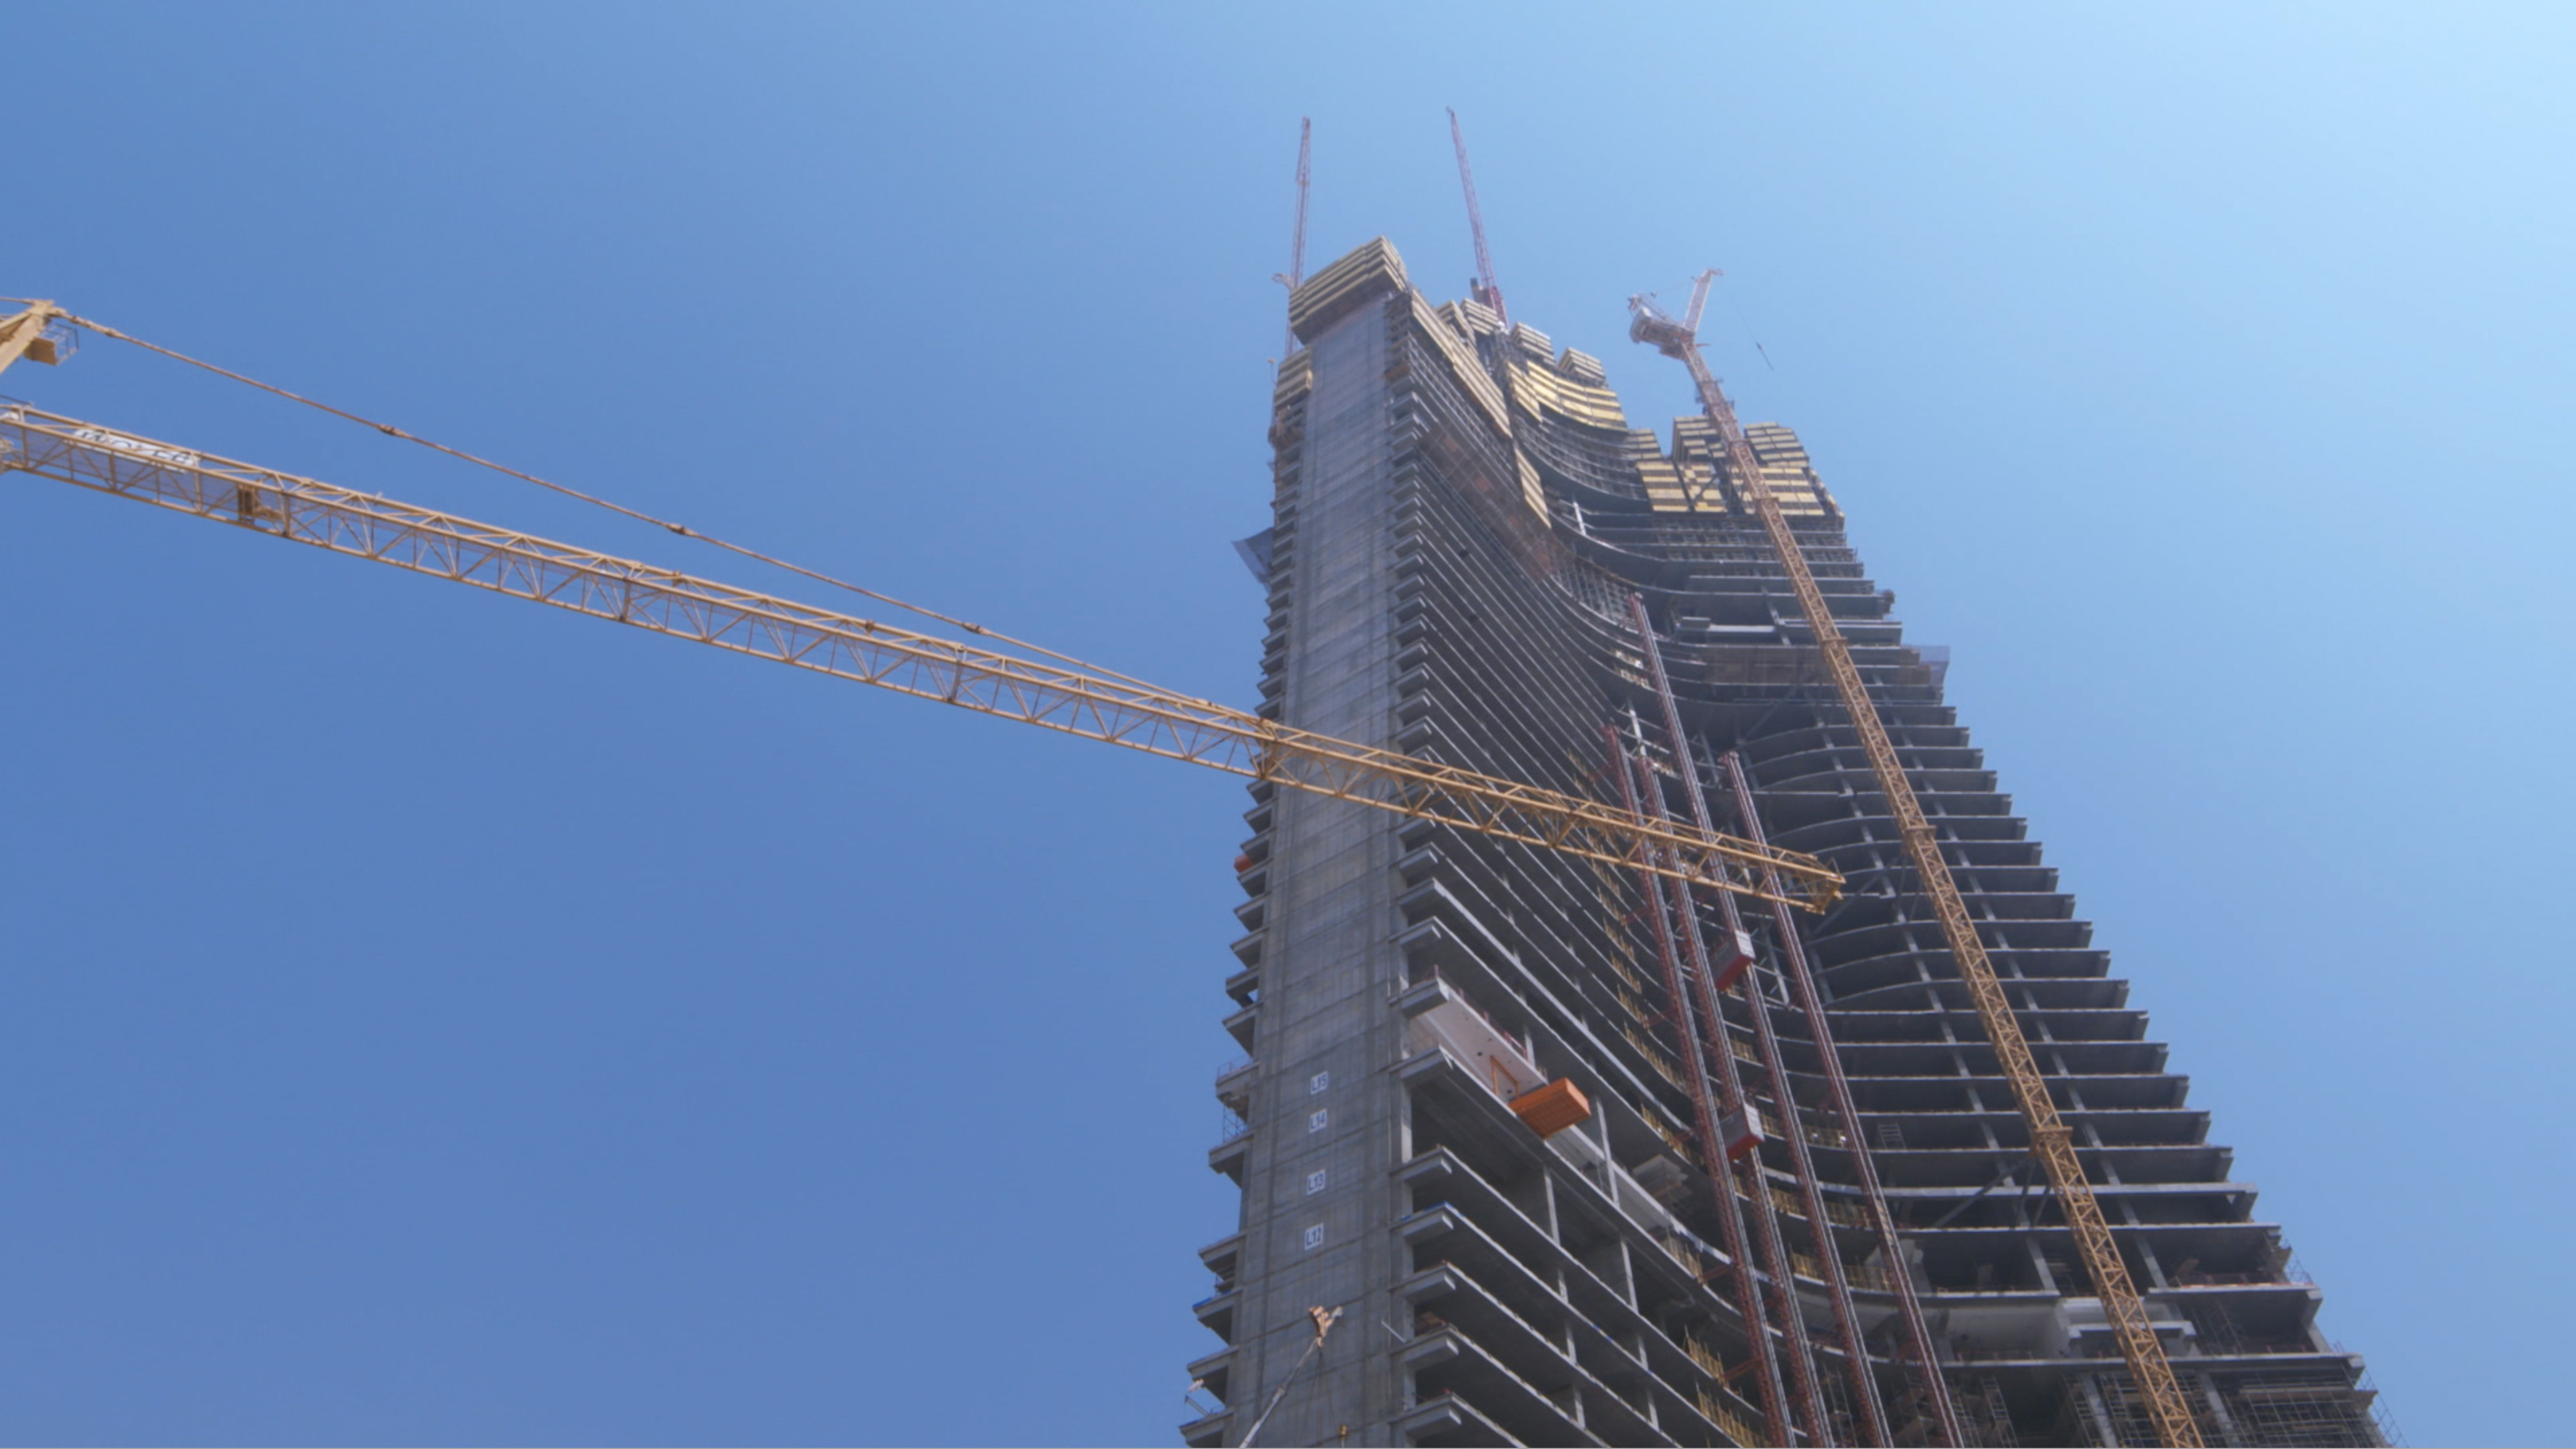 The tallest building in the world, Jeddah Tower, is set to open in